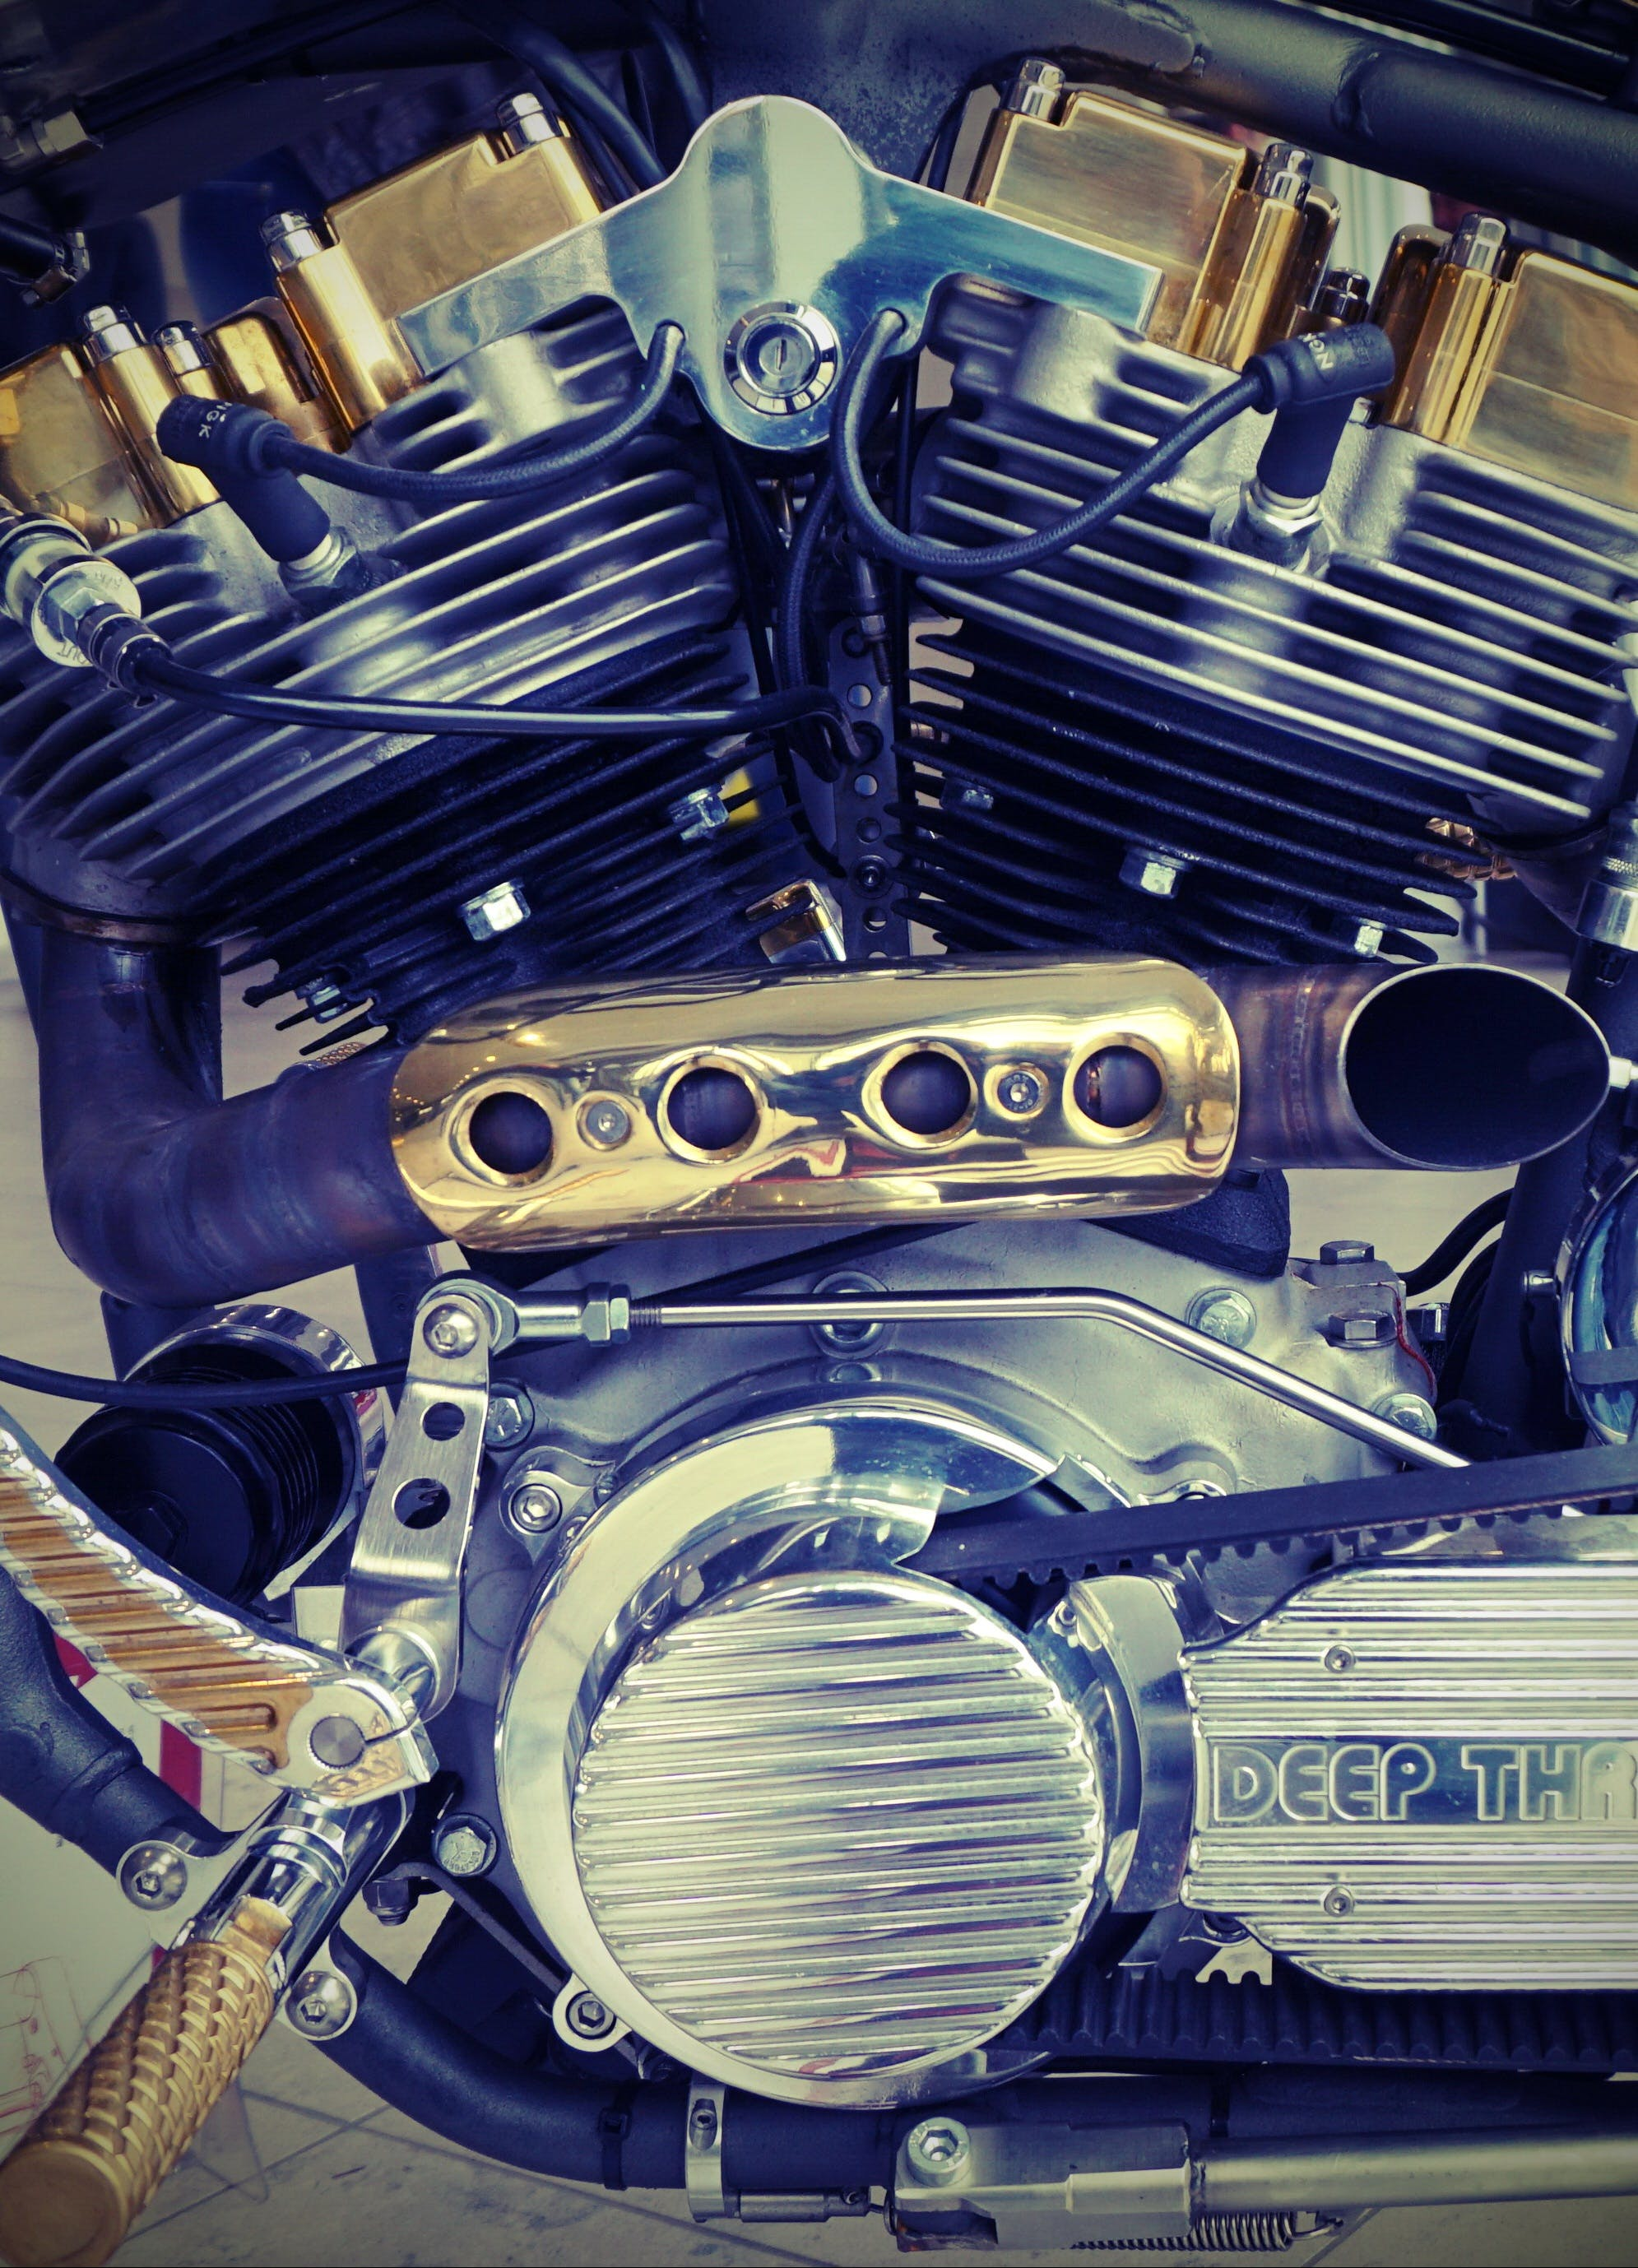 Closeup Photography of Motorcycle Engine